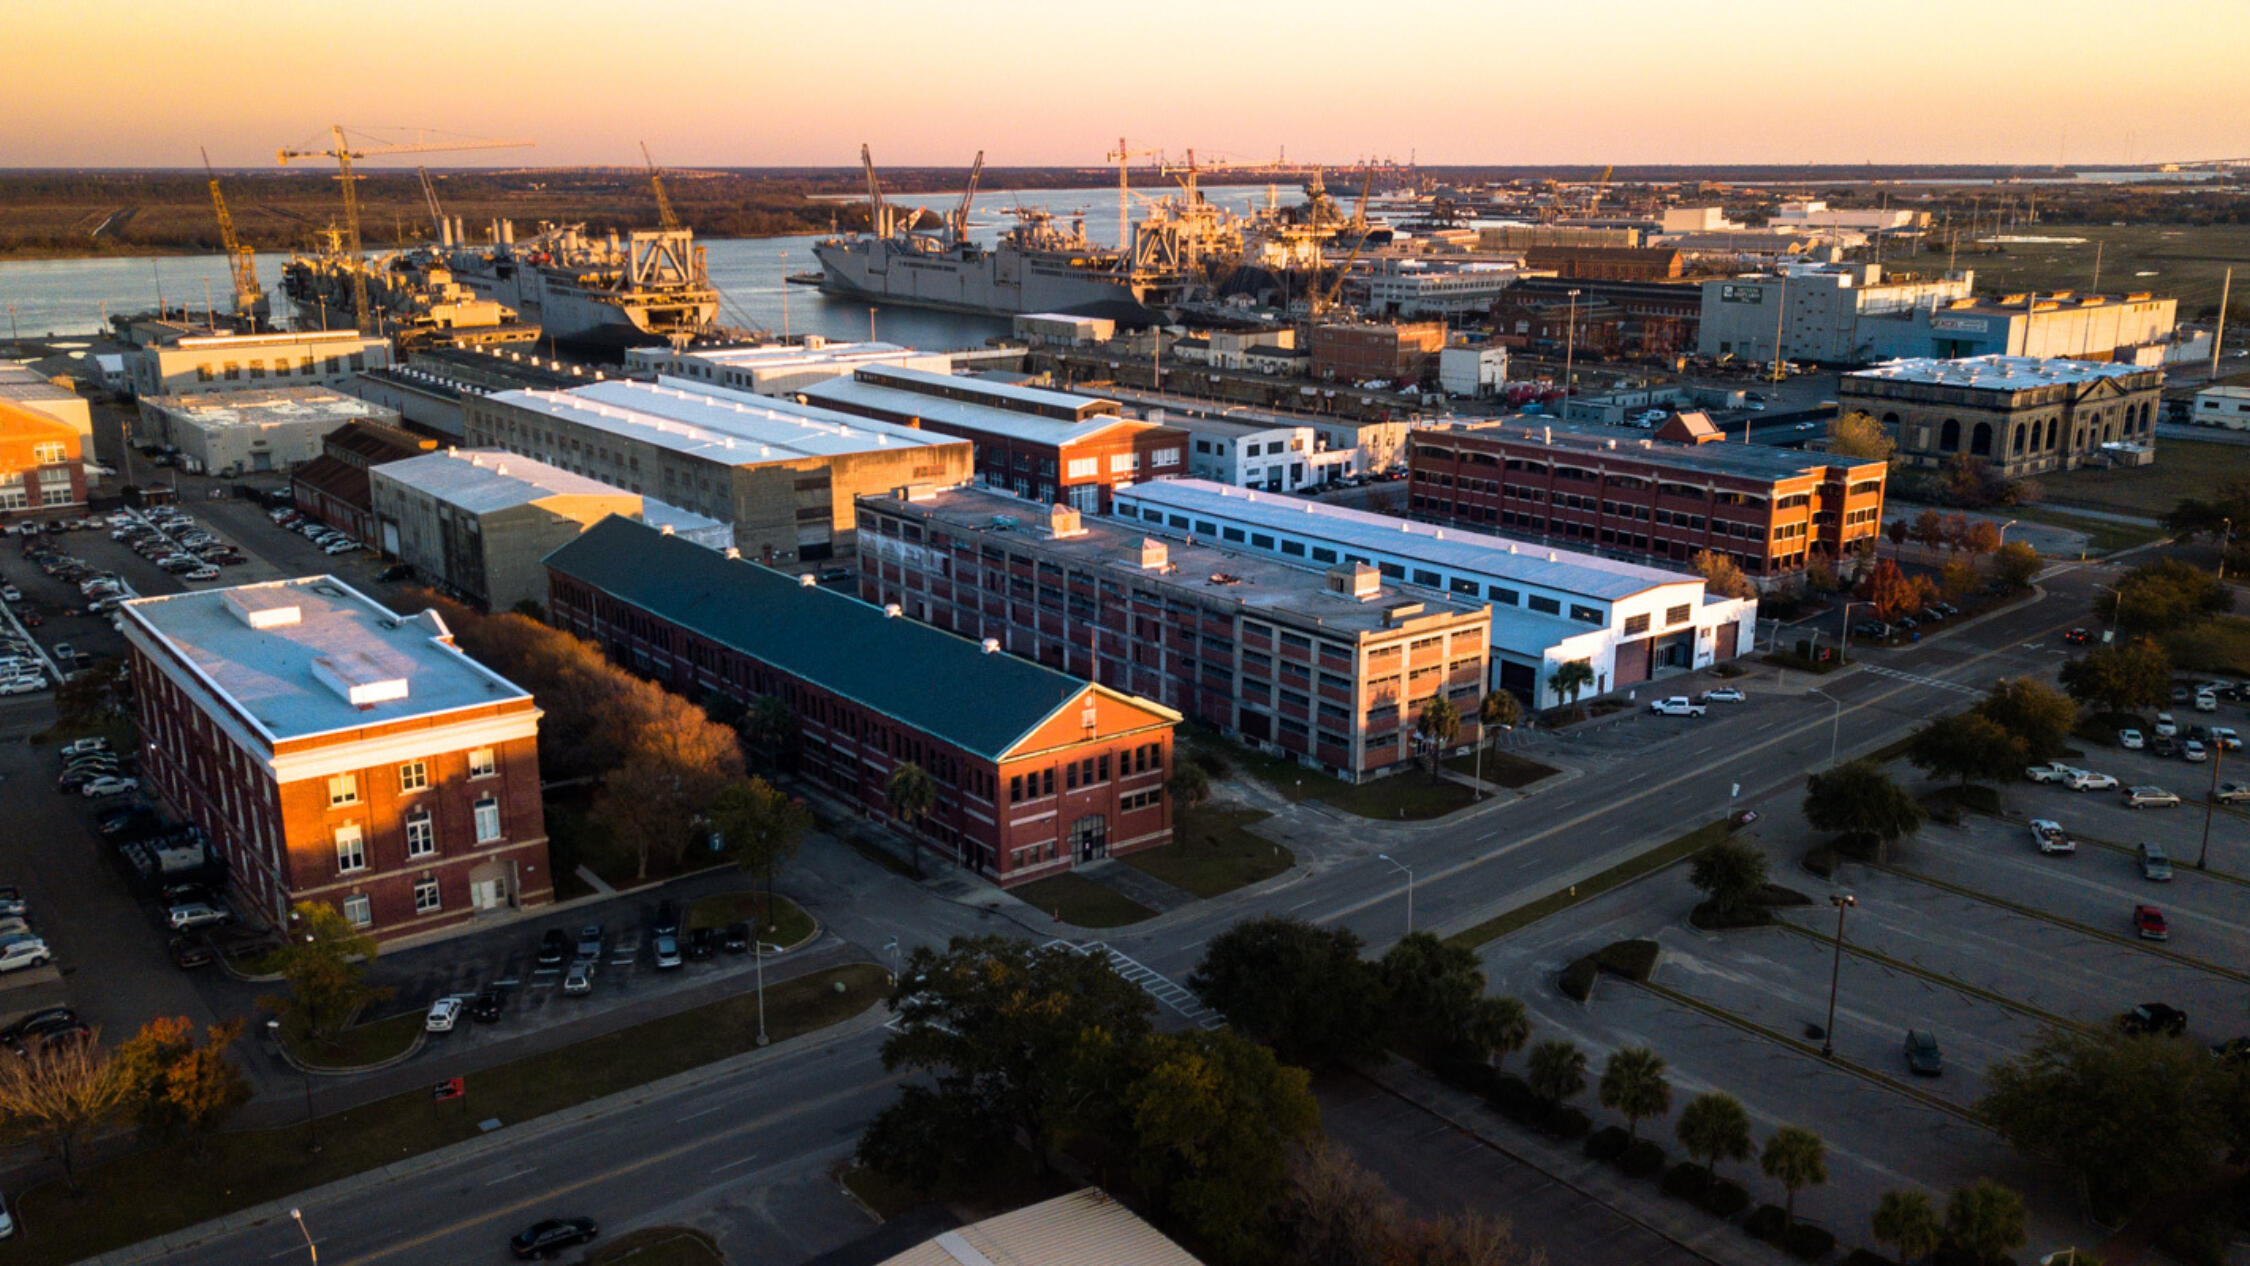 Aerial view of Navy Yard Charleston during dusk with waterway in background